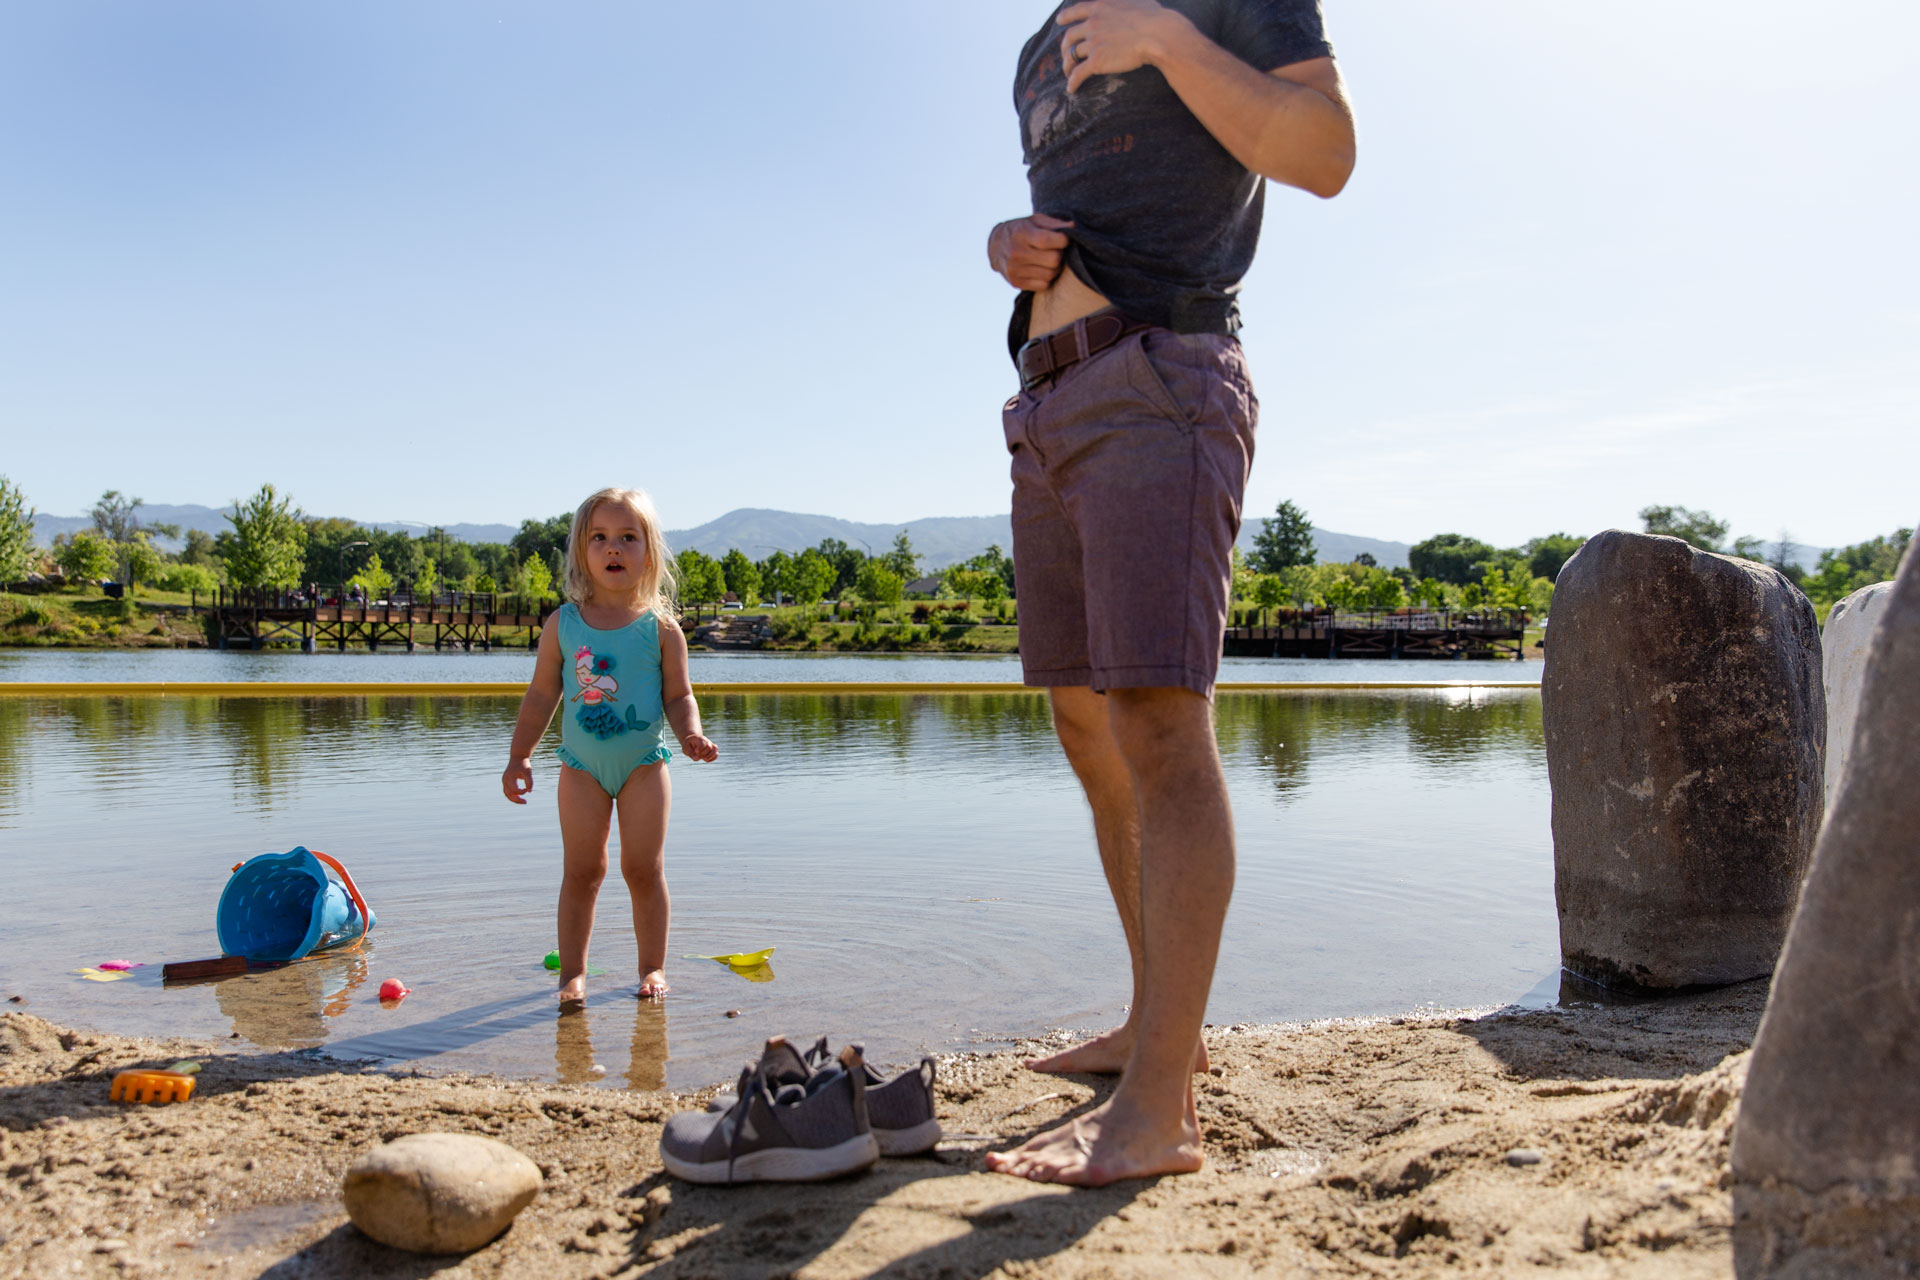 Dad standing up next to daughter with his short up showing his belly and daughter looking at him with an awe face by the lake